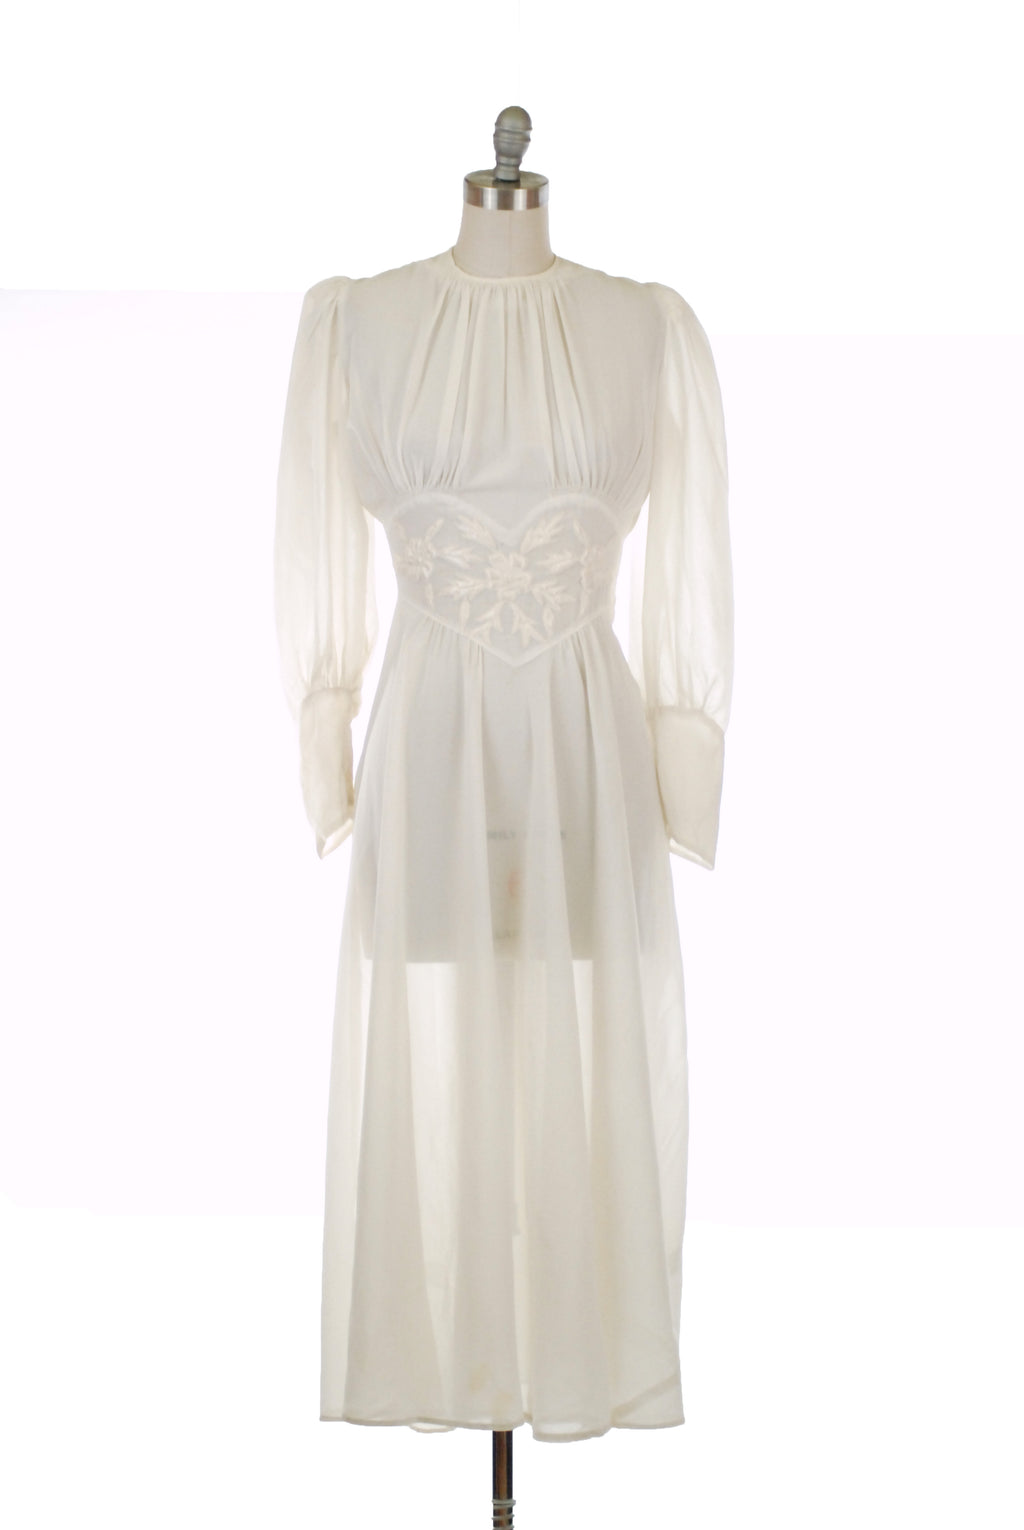 LAYAWAY DEPOSIT for Heartbreaking Late 1930s Sheer Wedding Dress or Evening Gown with Heart-Shaped Midwaist